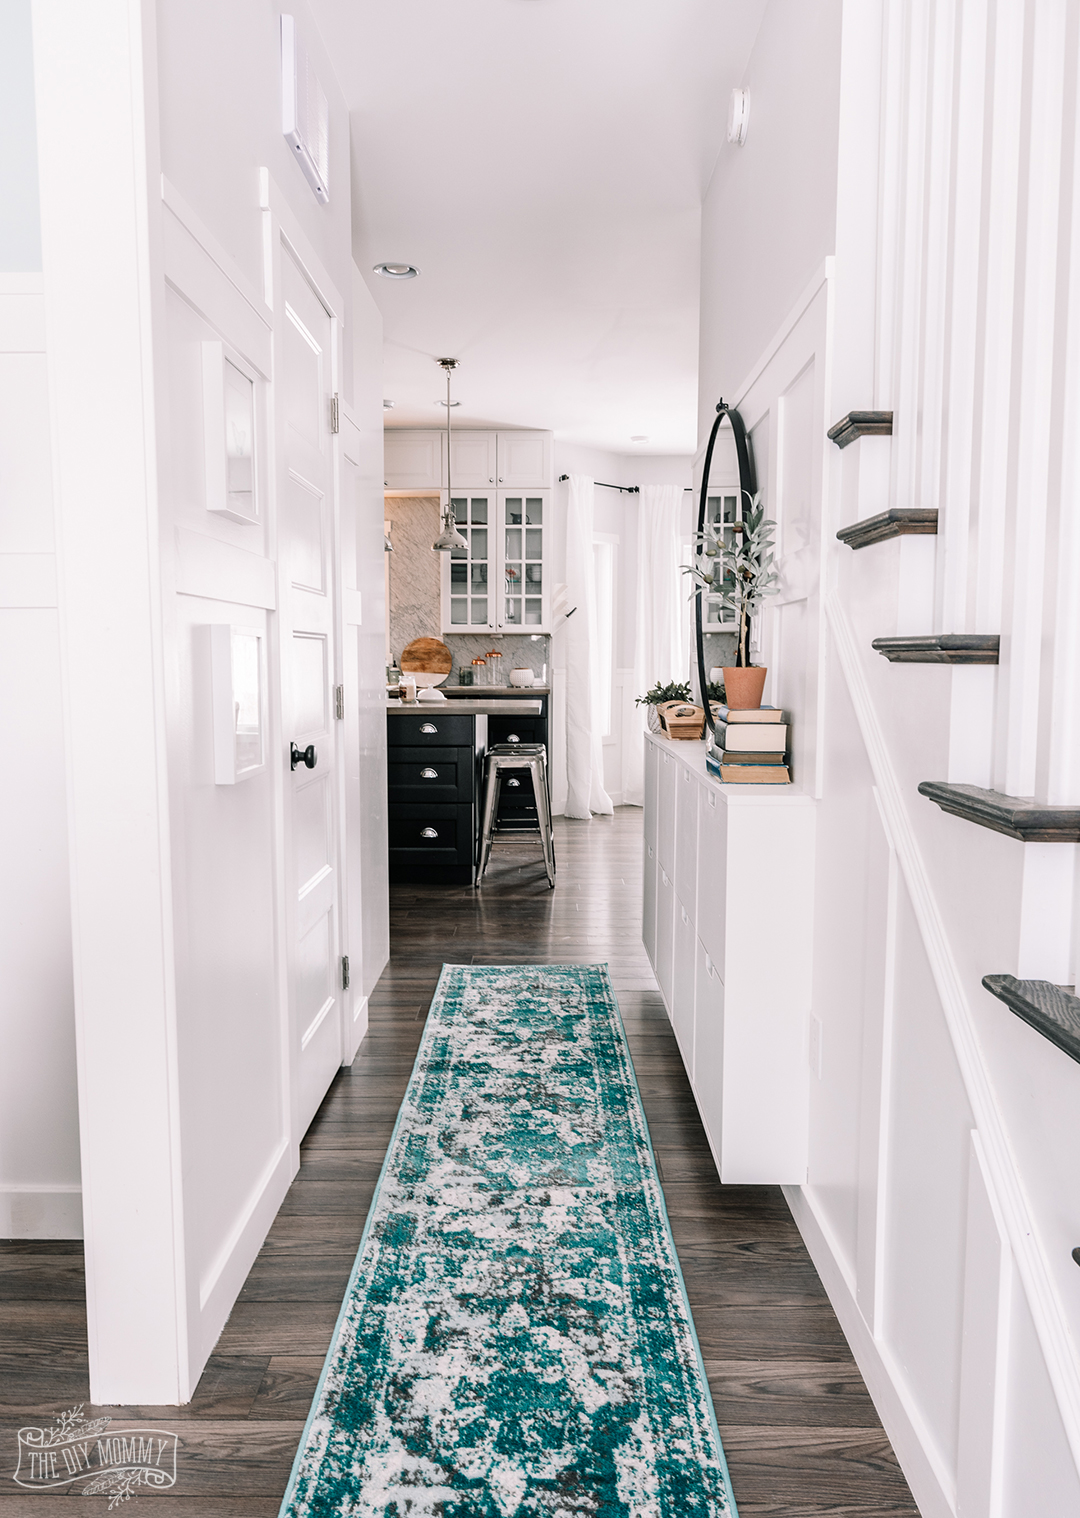 Small Entry Makeover With Tons Of Hallway Storage The Diy Mommy,Colors That Go With Black And White Polka Dots